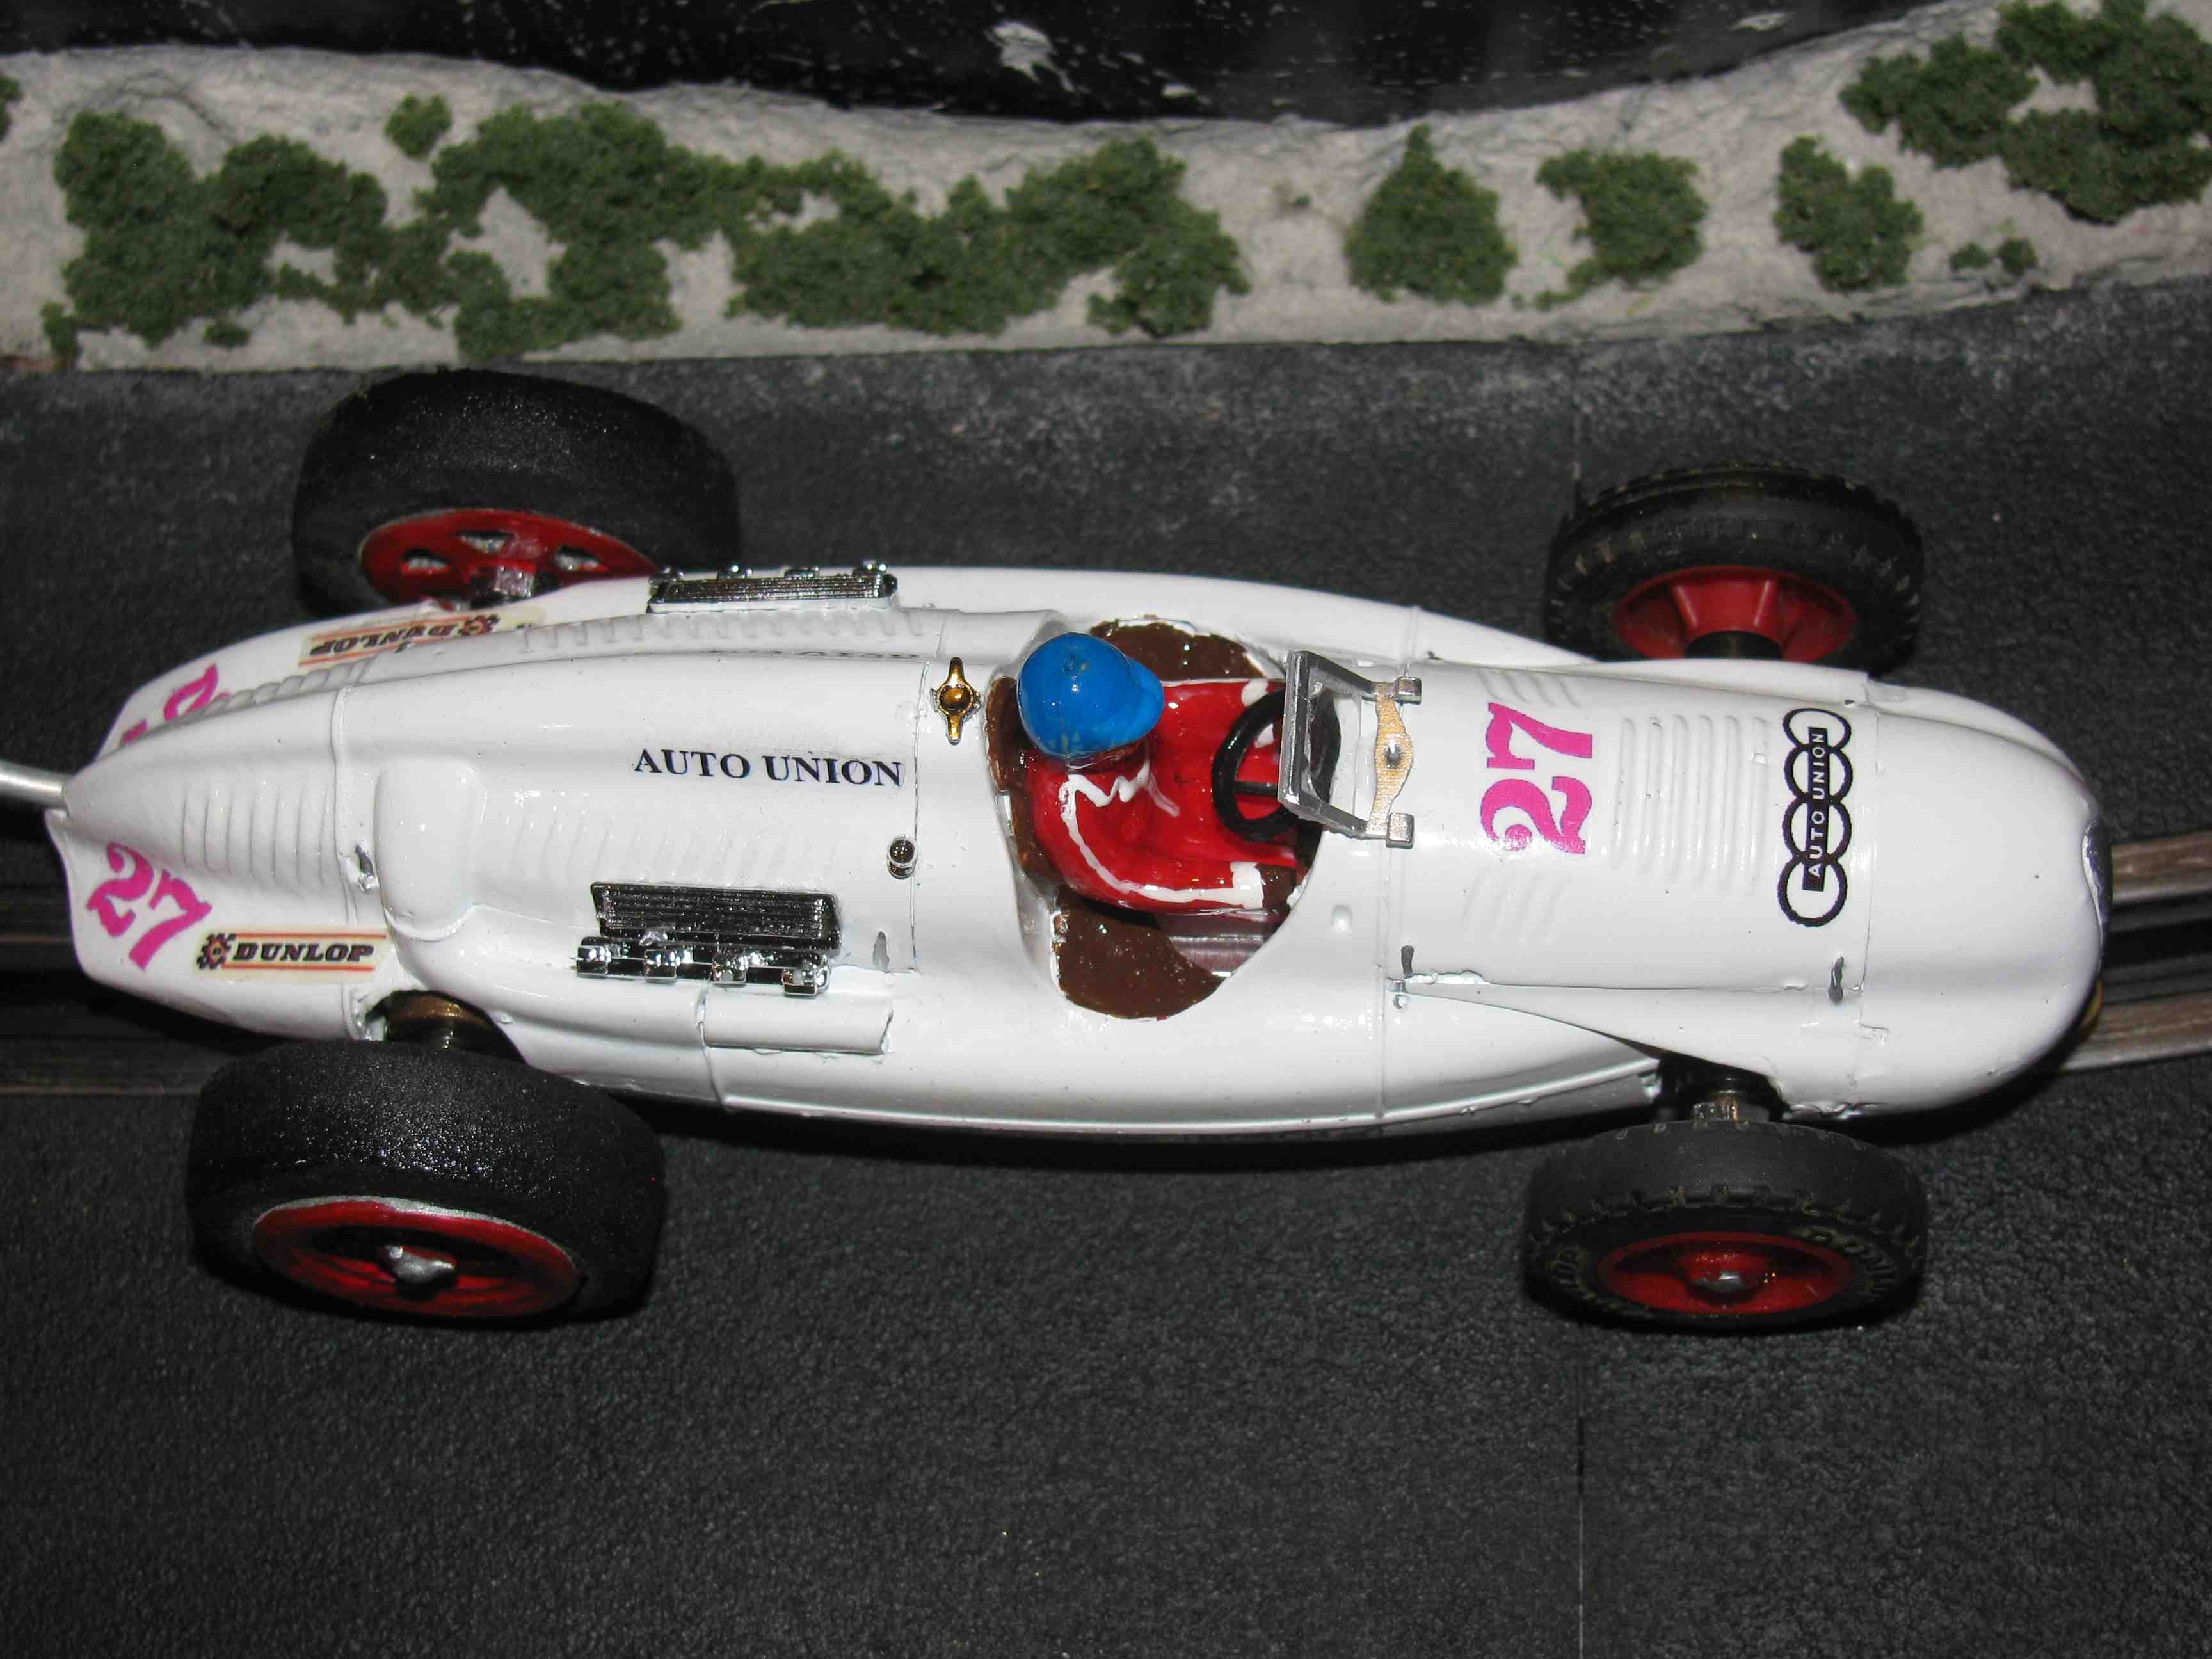 *SOLD* Rare 1938/39 Auto Union Type D' tag White Proto Type Racer Slot Car 1/32 Scale – Car #27